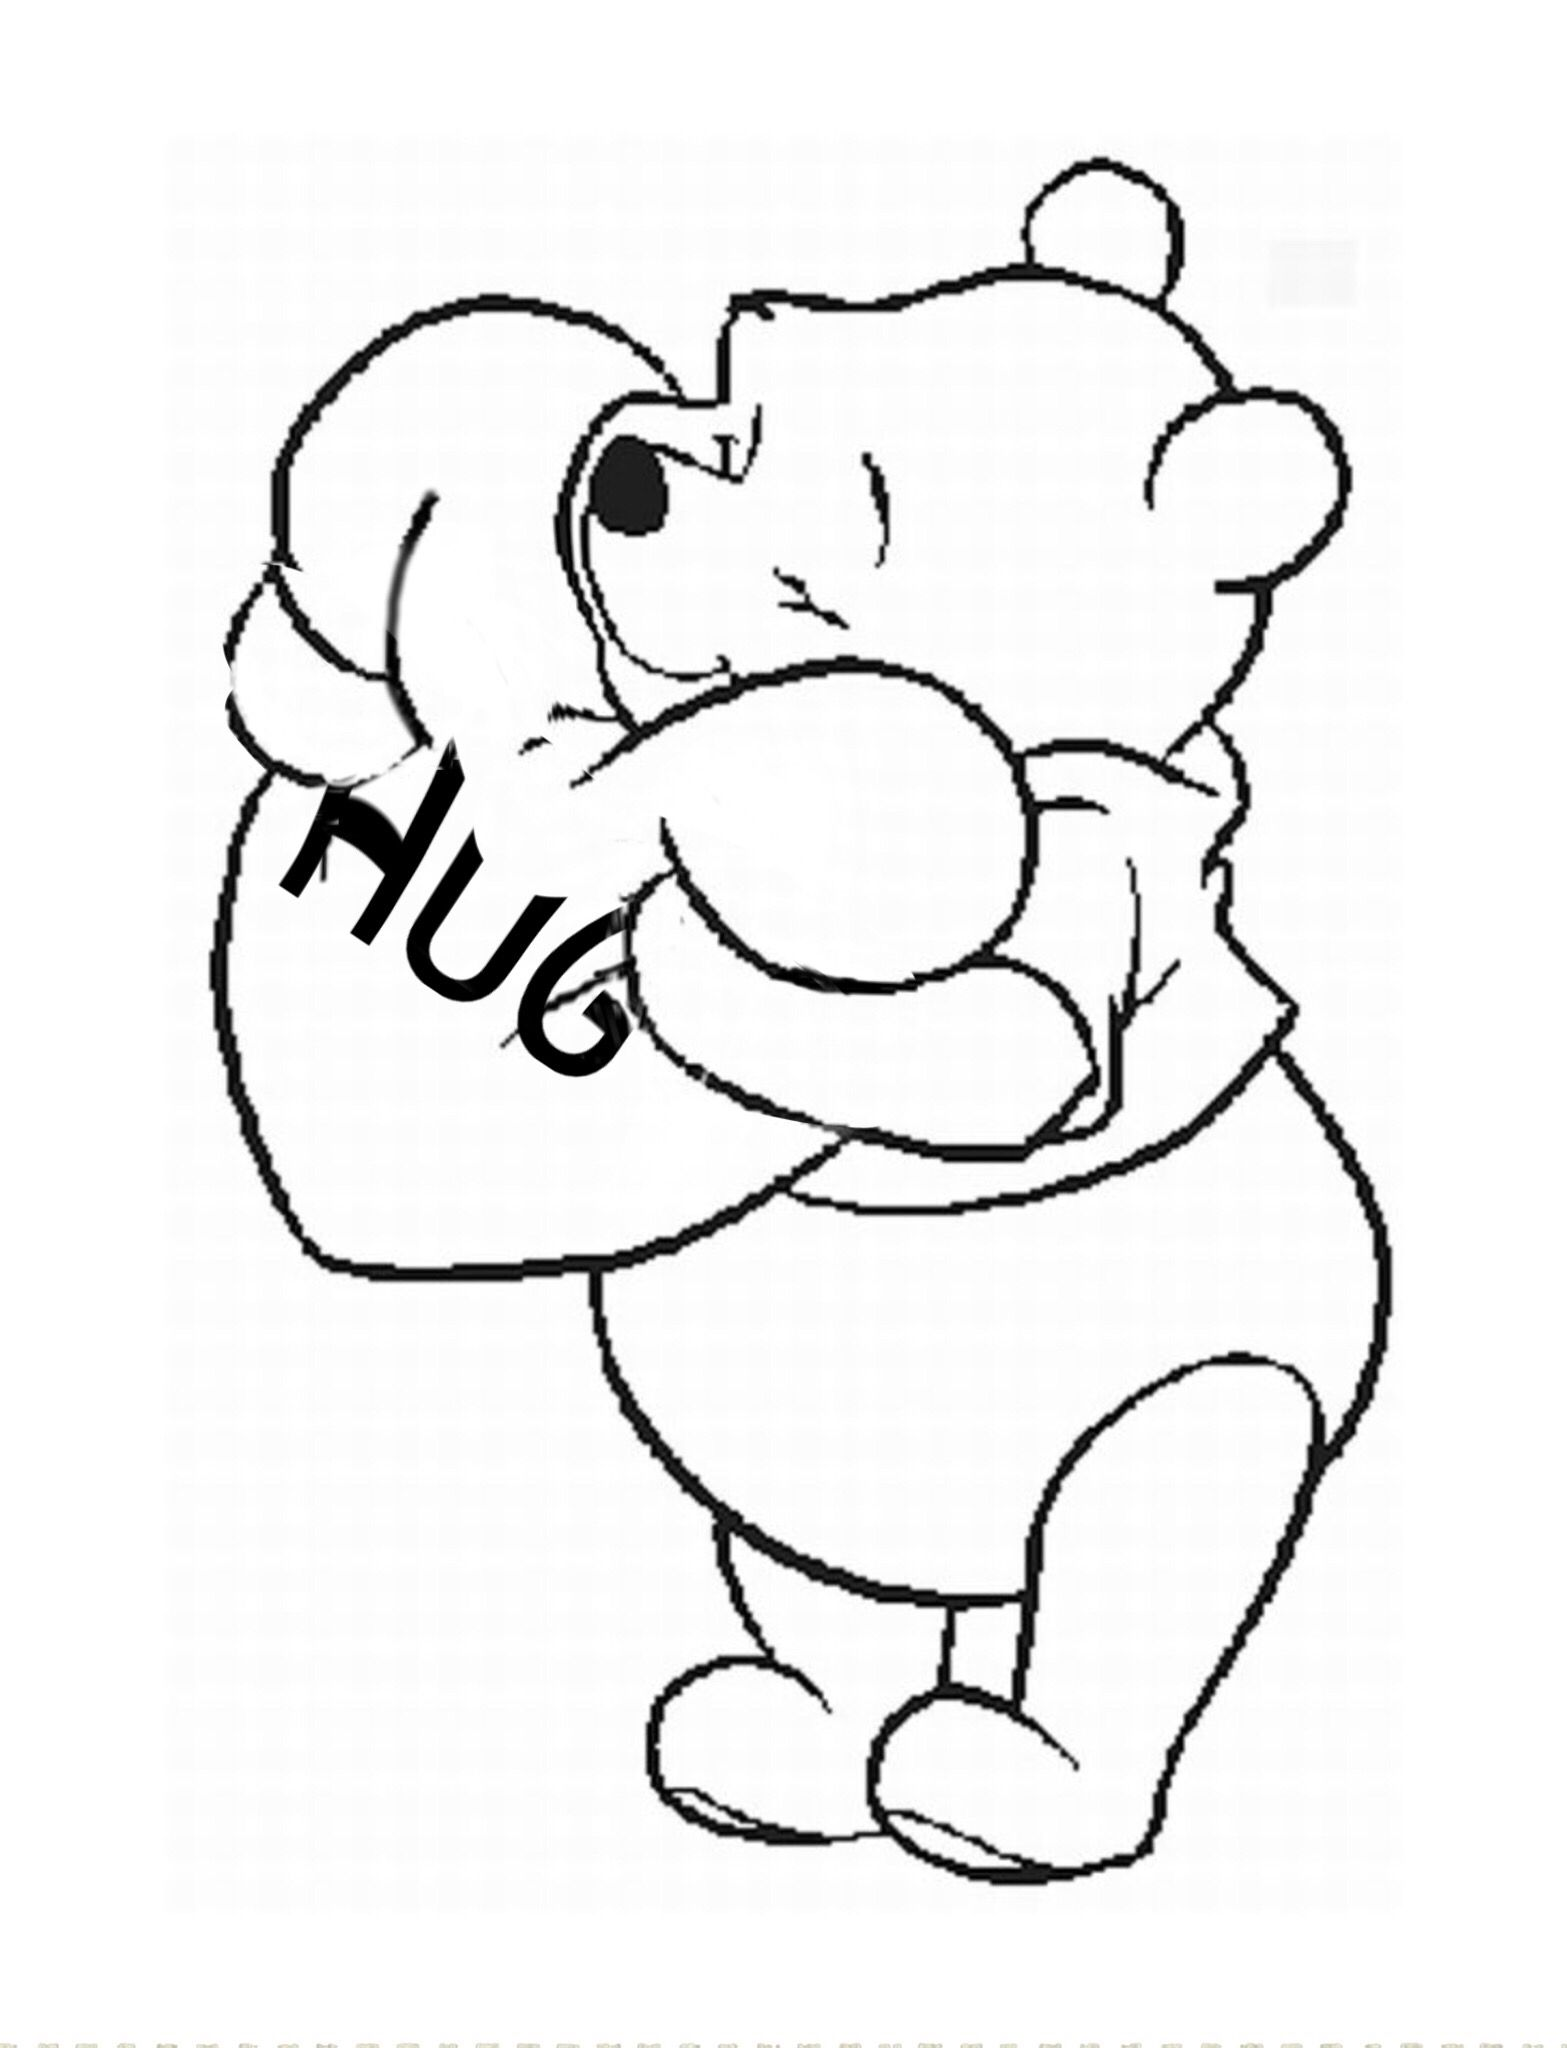 this is what a hug is by simc american sign language asl